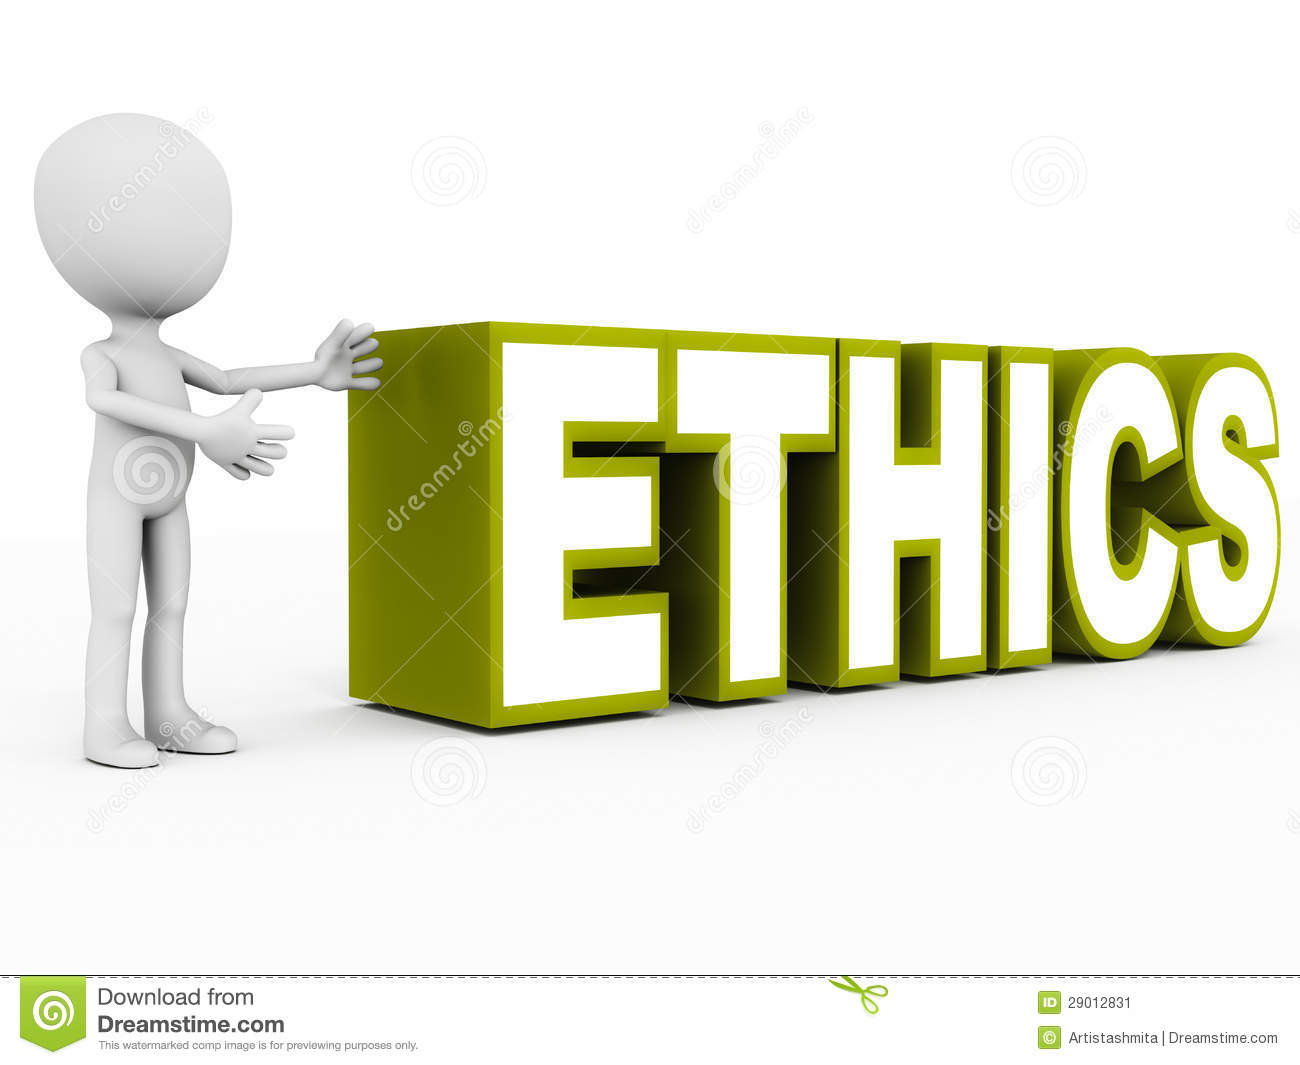 how to use business ethics in a sentence